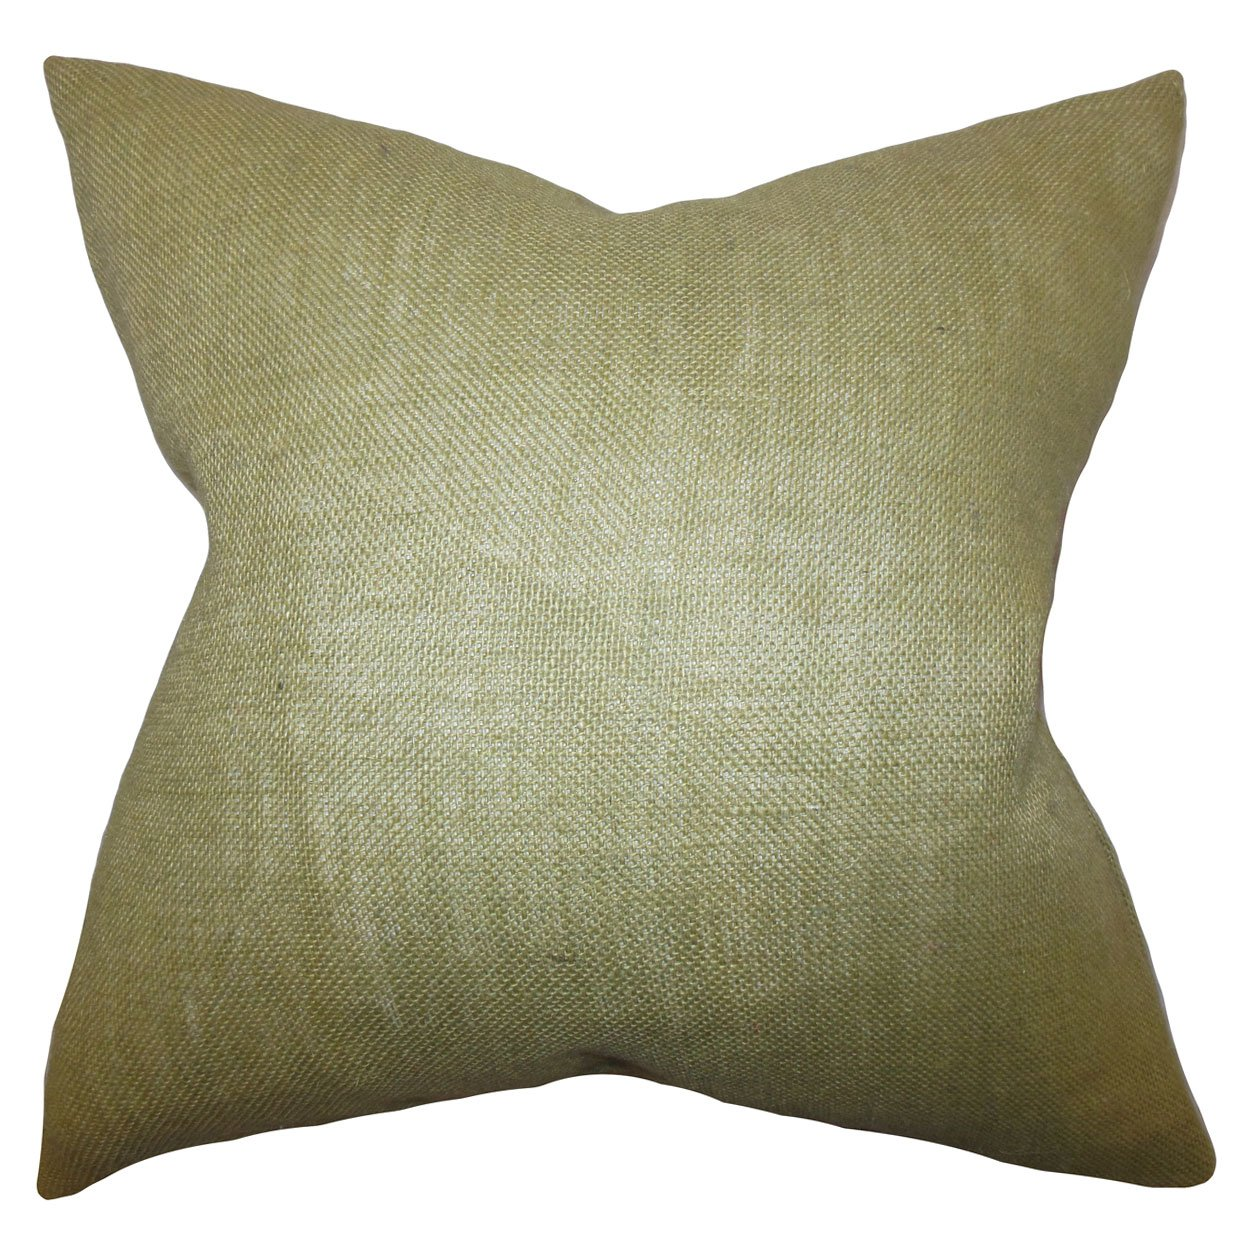 Mango The Pillow Collection Ellery Solid Pillow